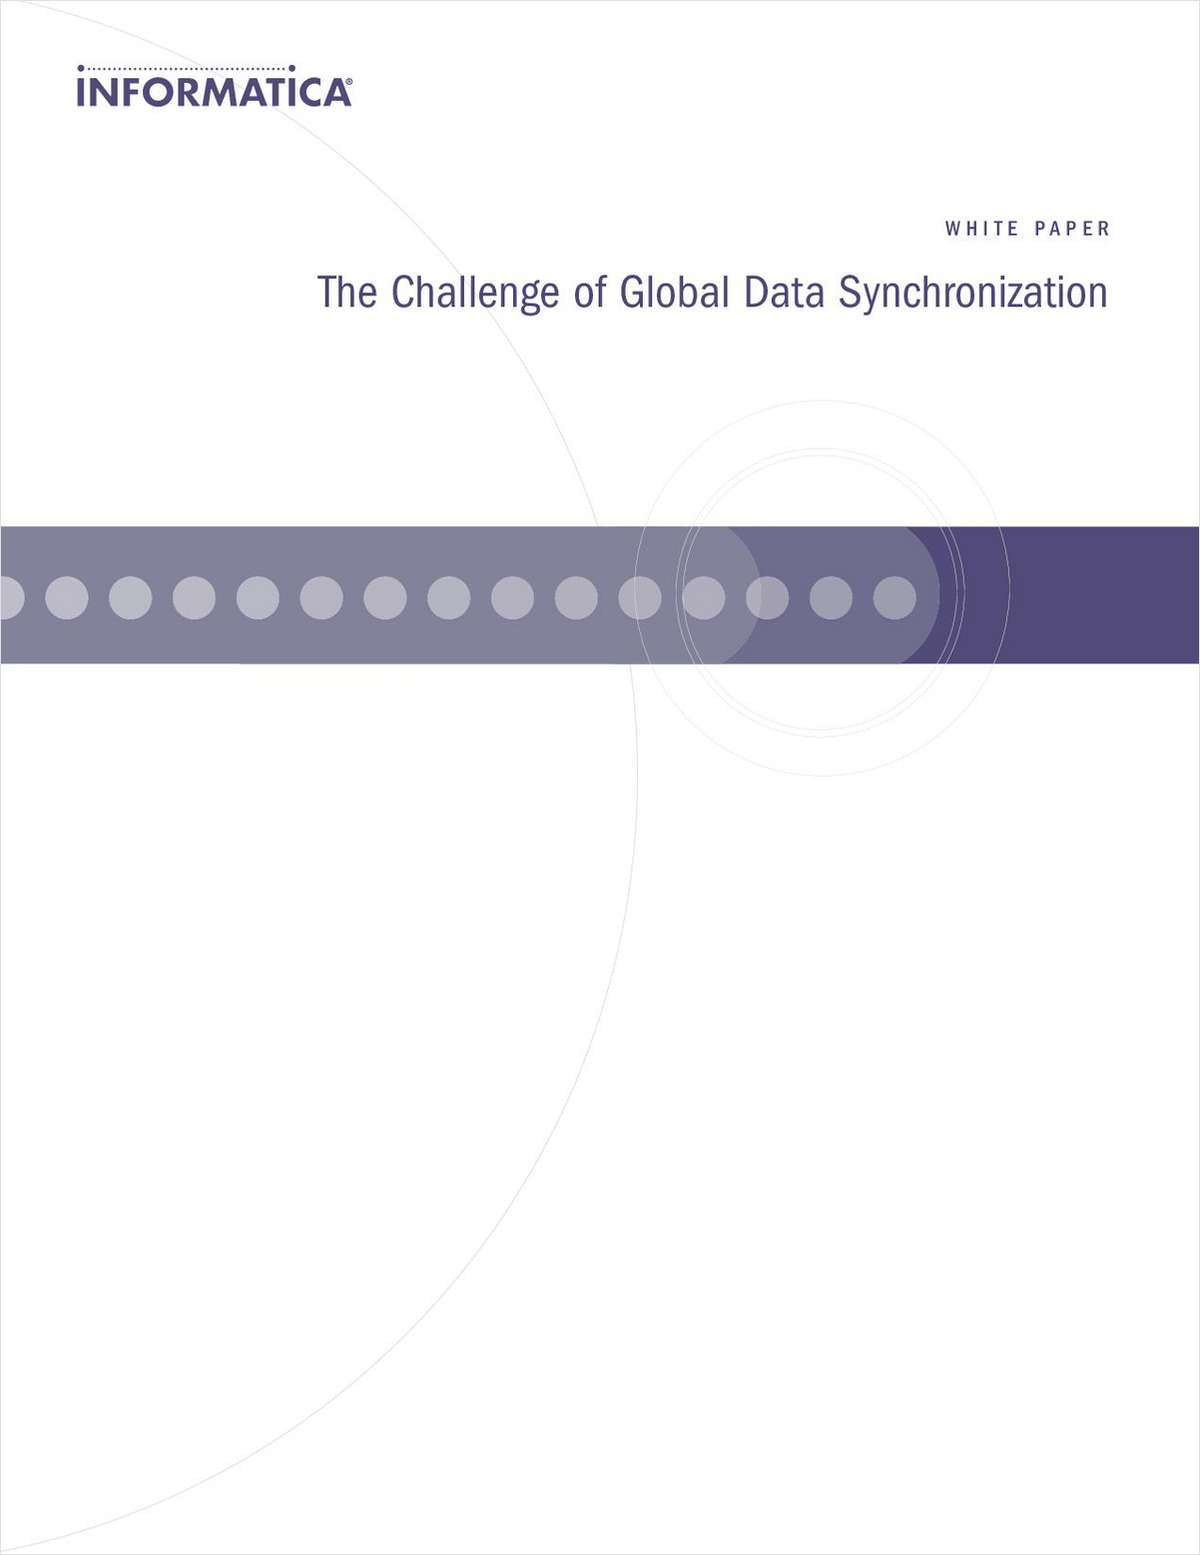 The Challenge of Global Data Synchronization